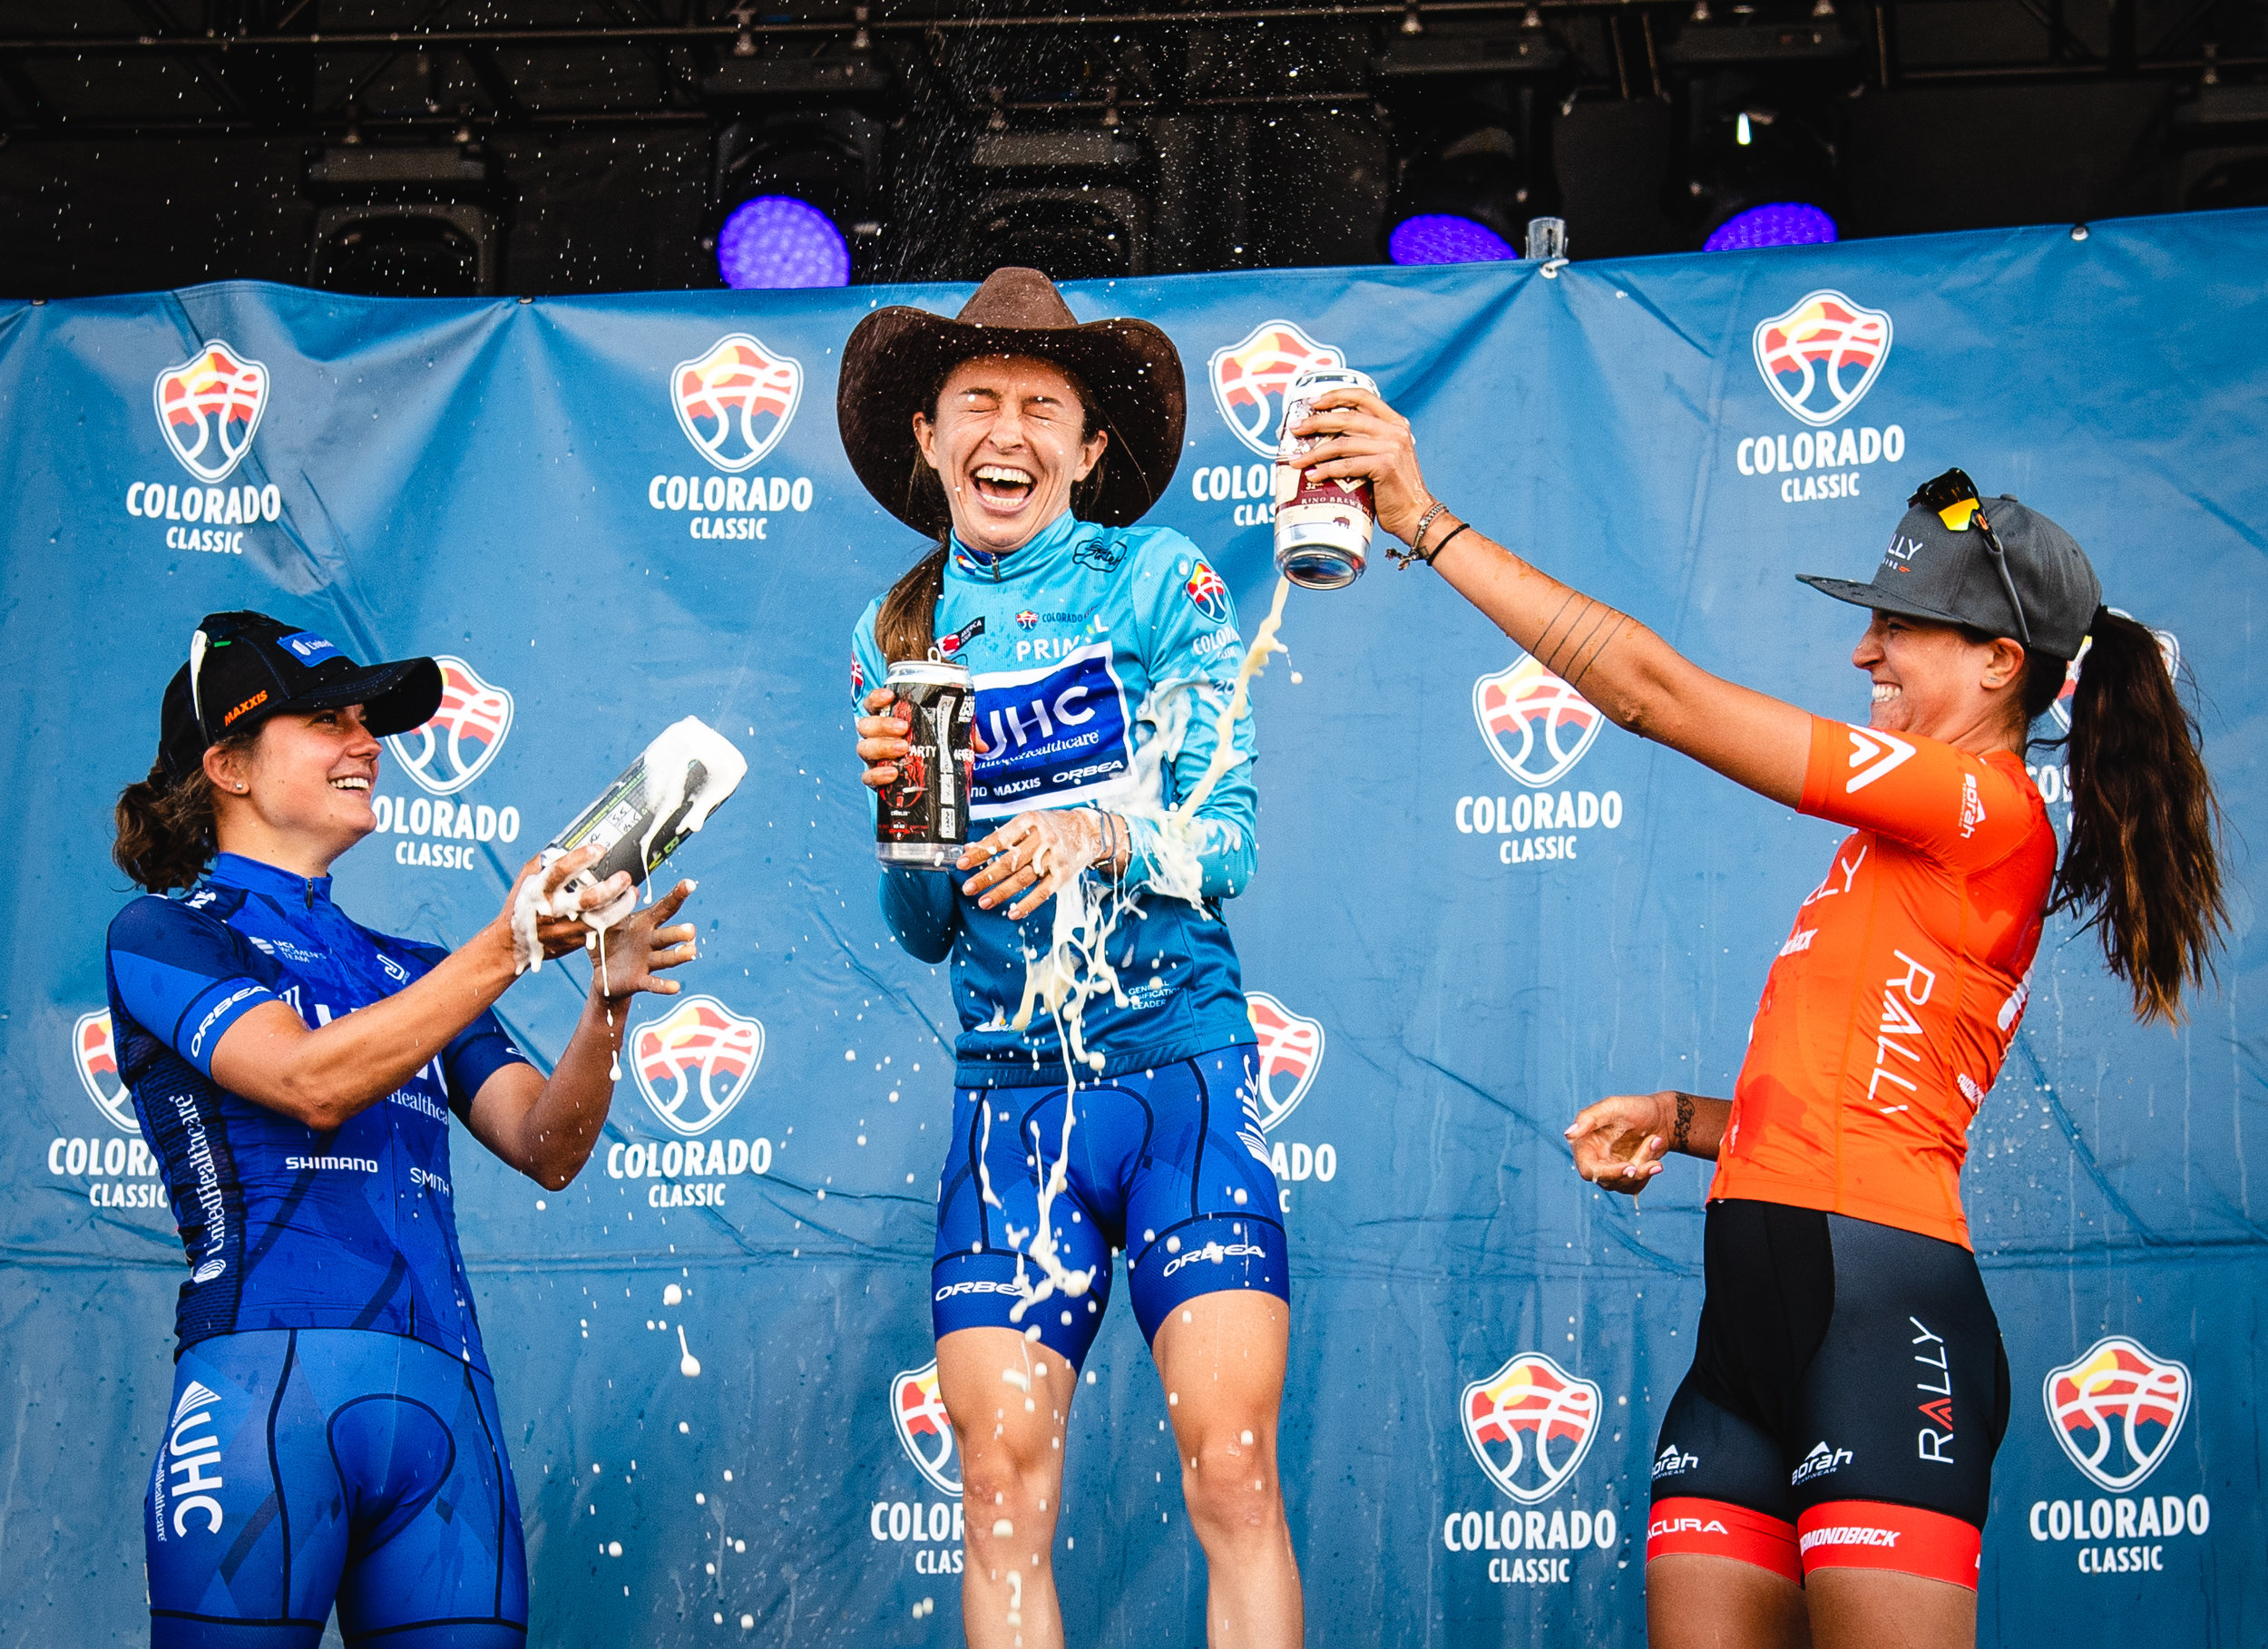 Katie Hall (now riding for Team USA/ Boels-Dolmans) won the 2018 Colorado Classic ahead of Leah Thomas and Abigail Mickey.